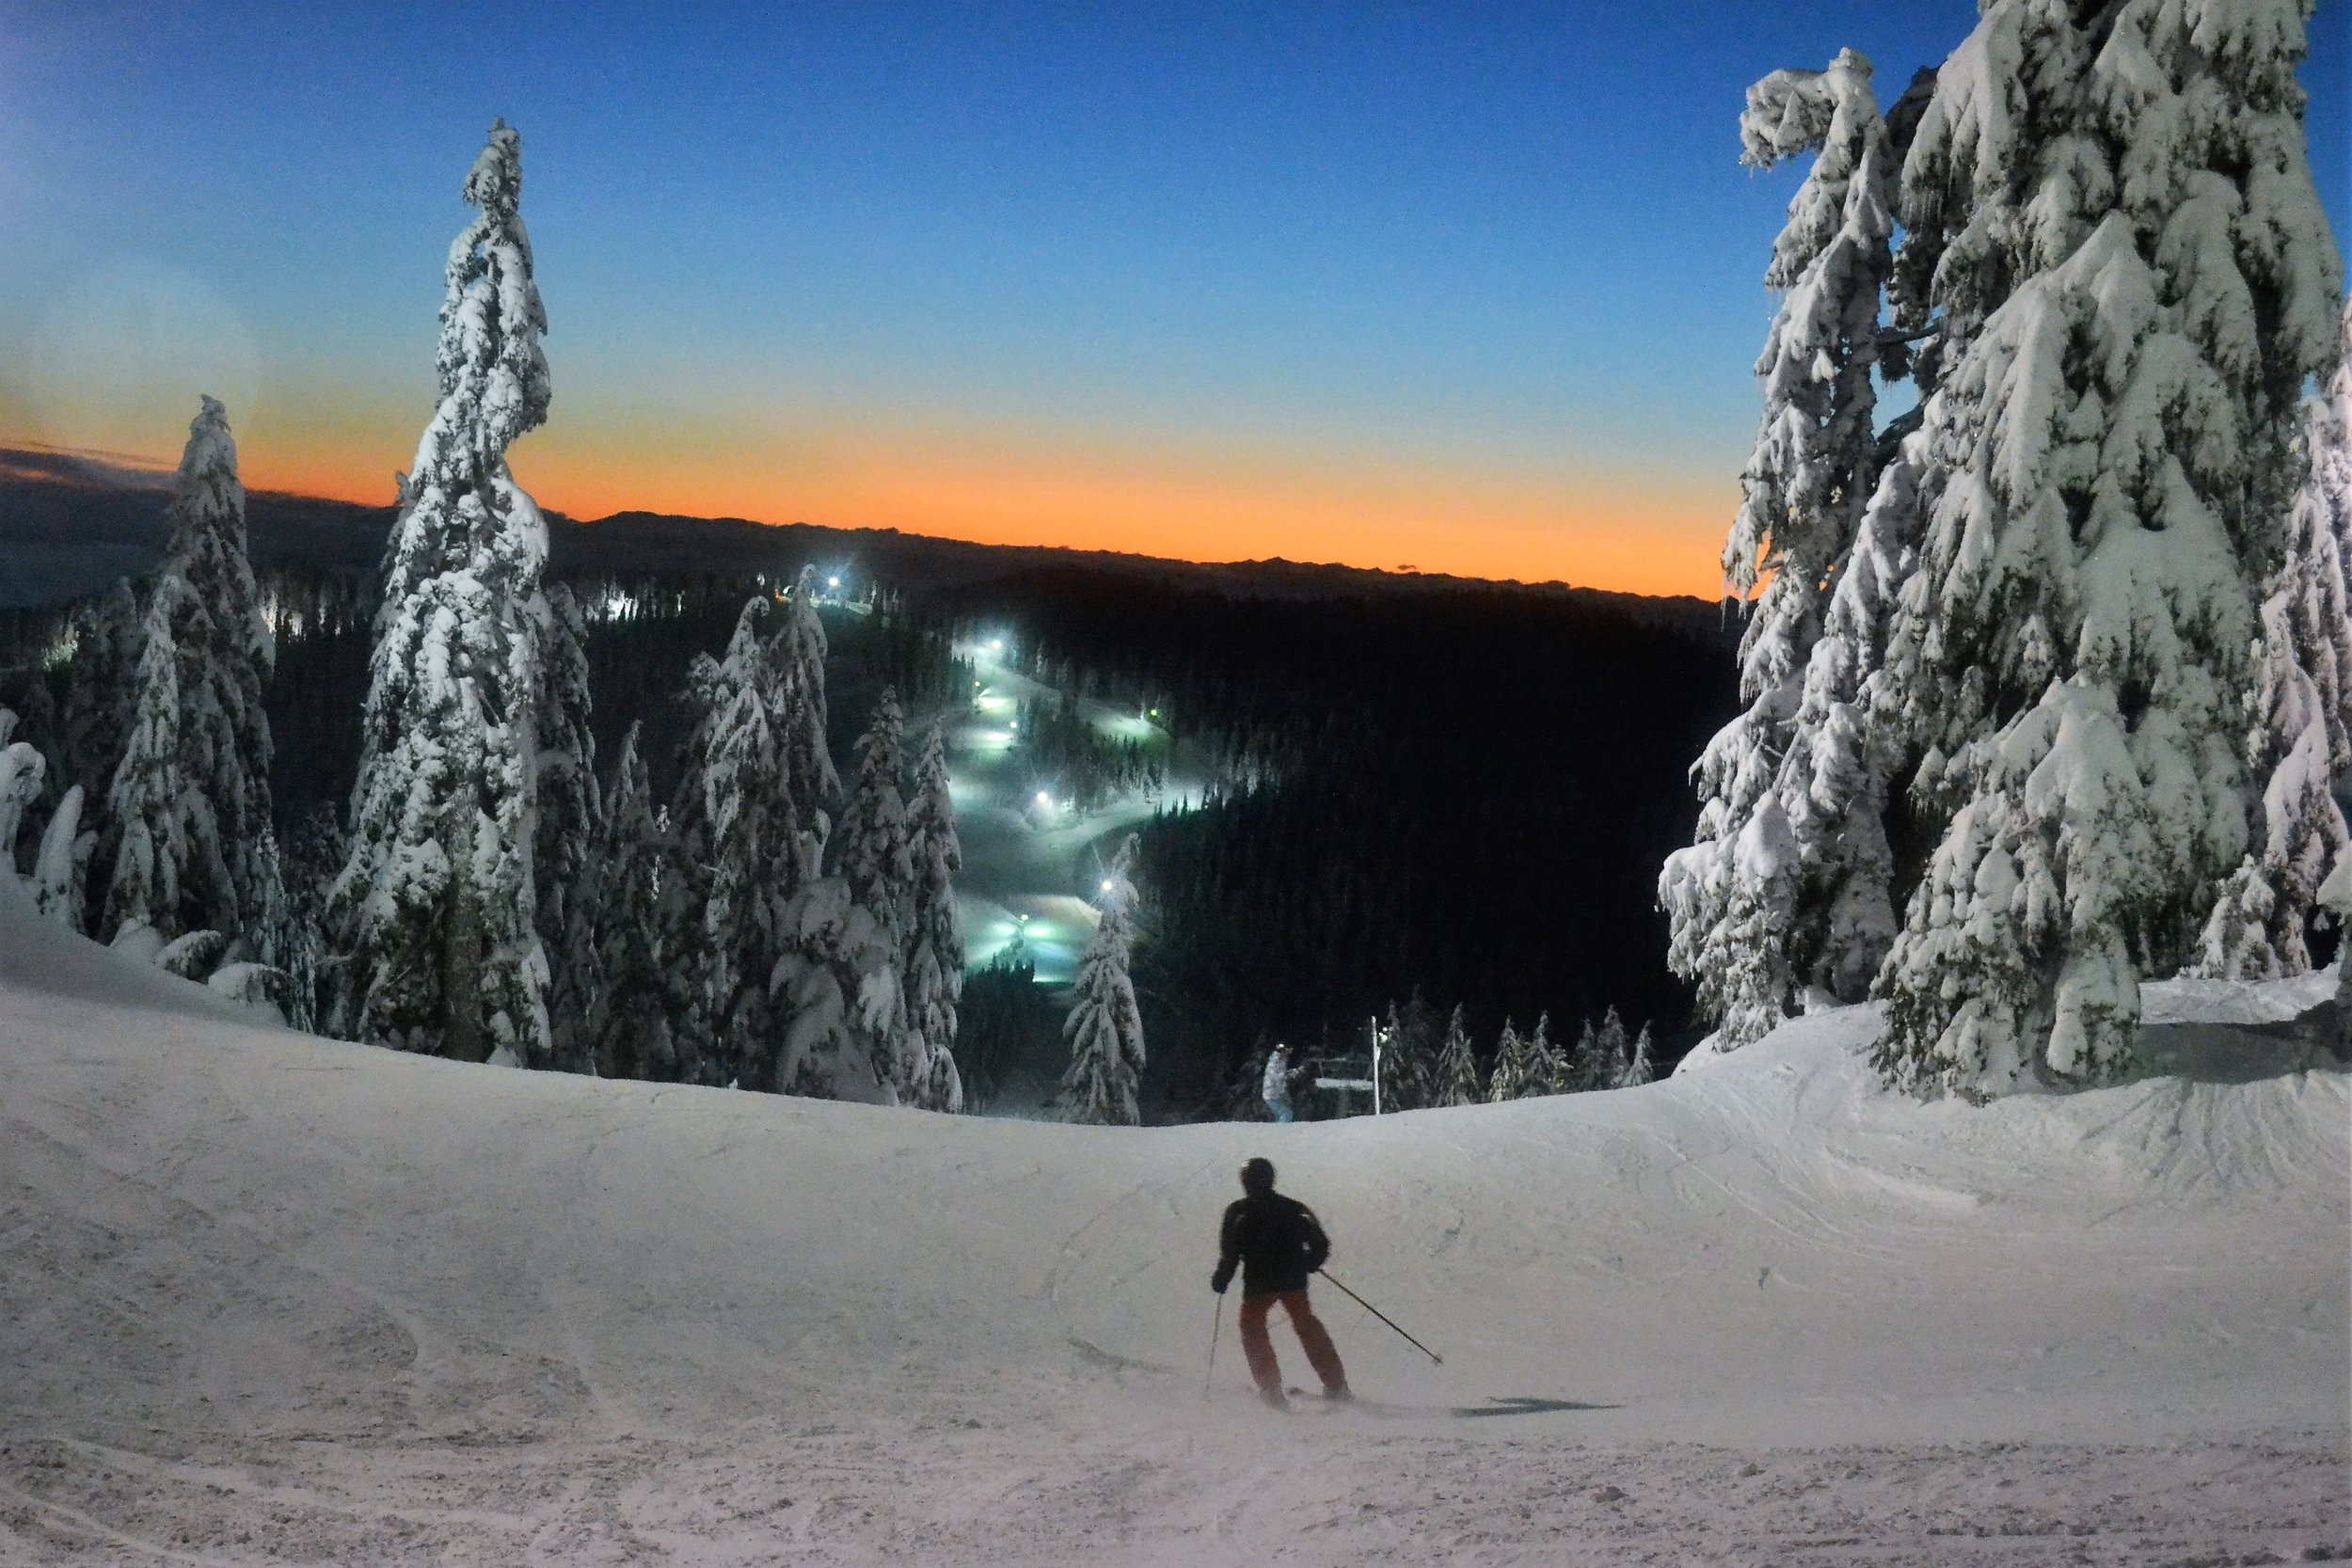 Night skiing in Vancouver